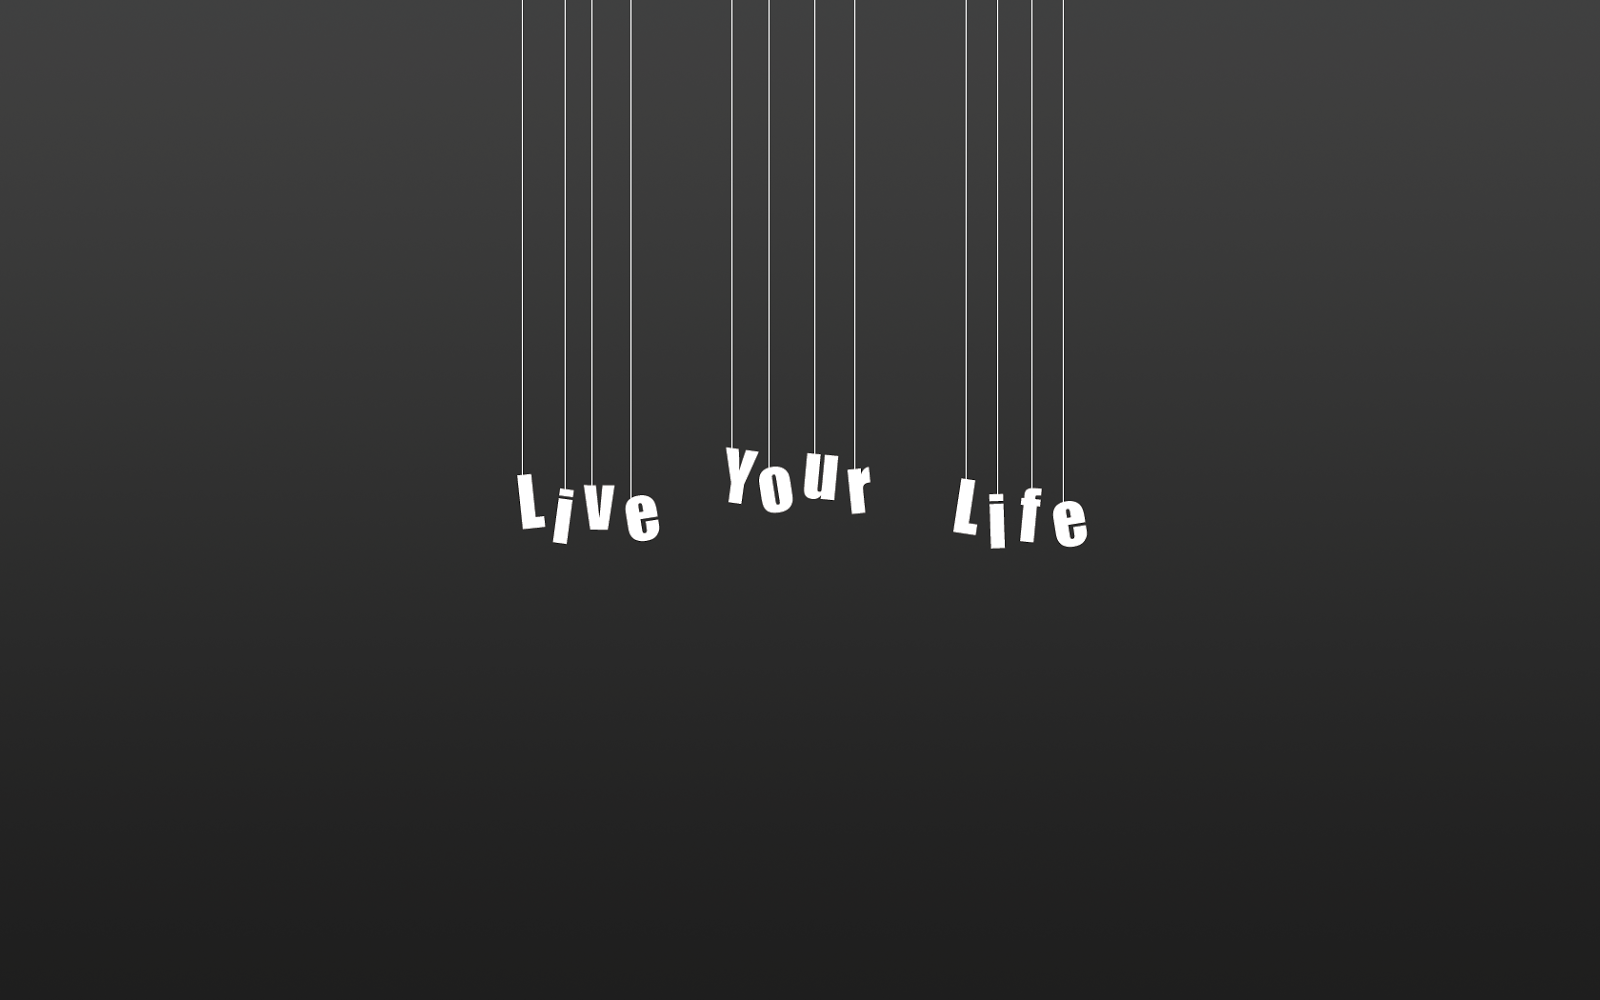 Hd 1080p Motivational Wallpapers Collection 3 Png 1600 1000 Motivational Wallpaper Wallpaper Motivation